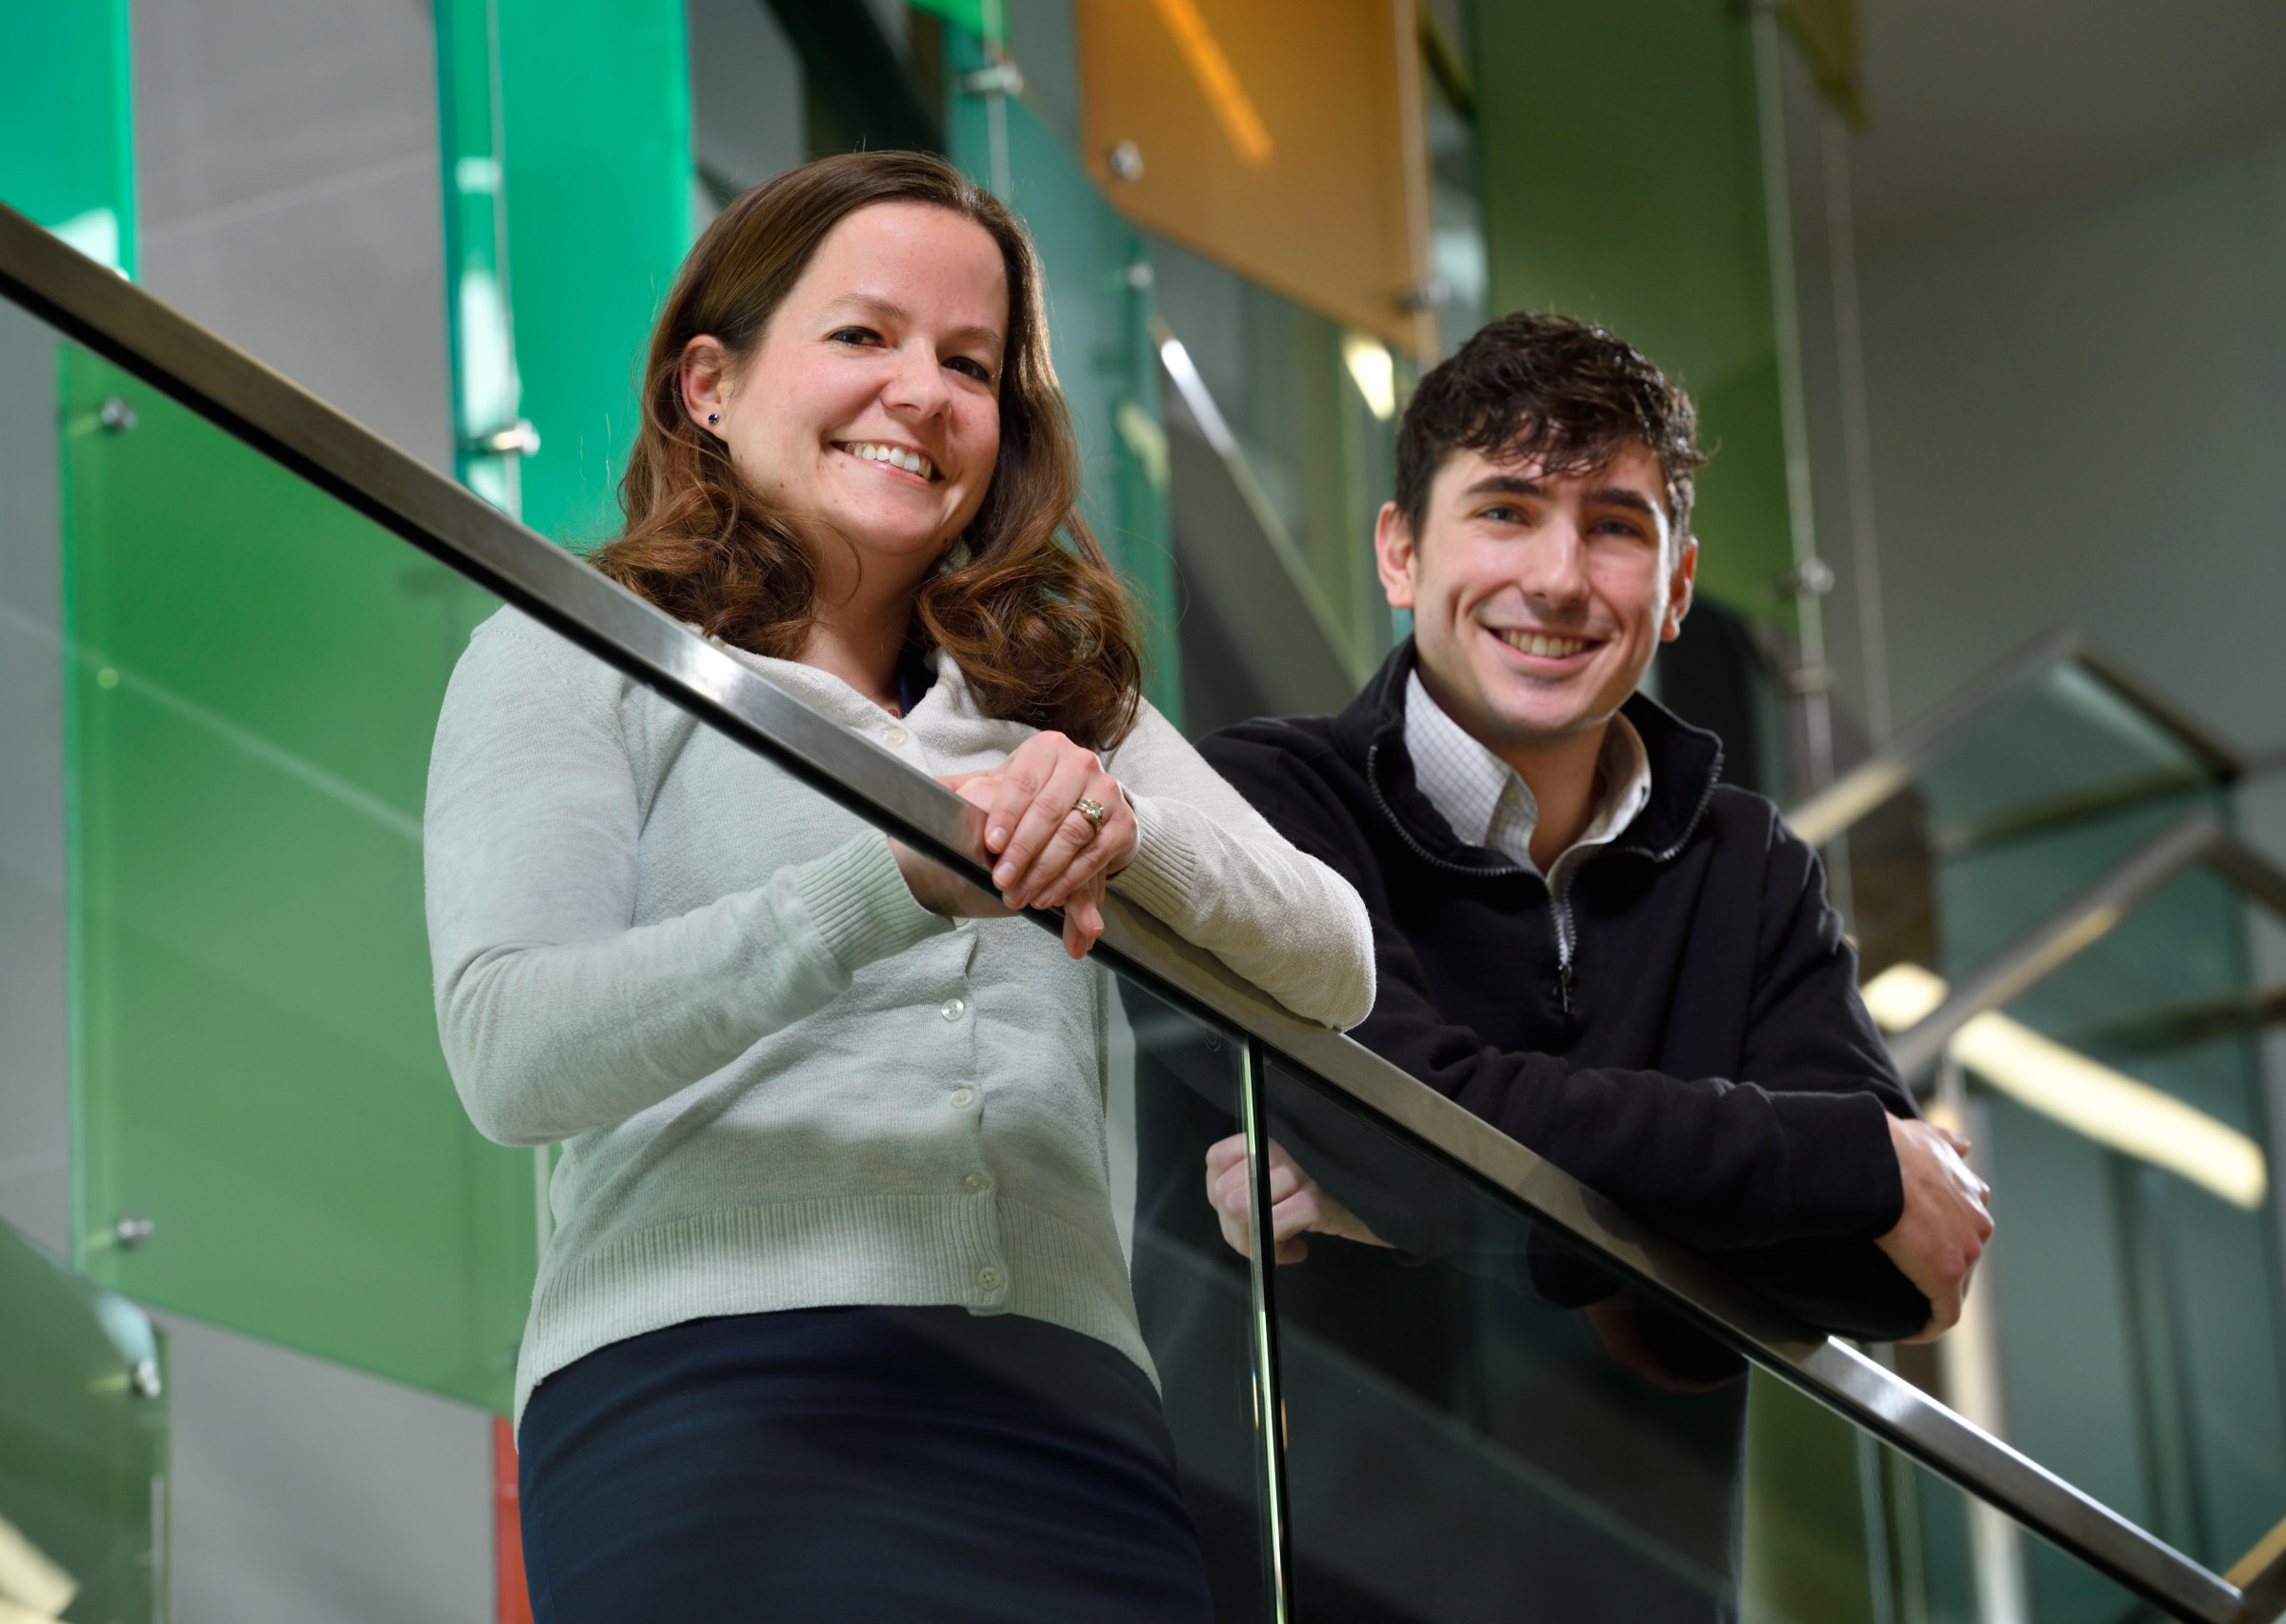 Photo of Joseph Salatino (right) and his advisor, Dr. Erin Purcell (left)